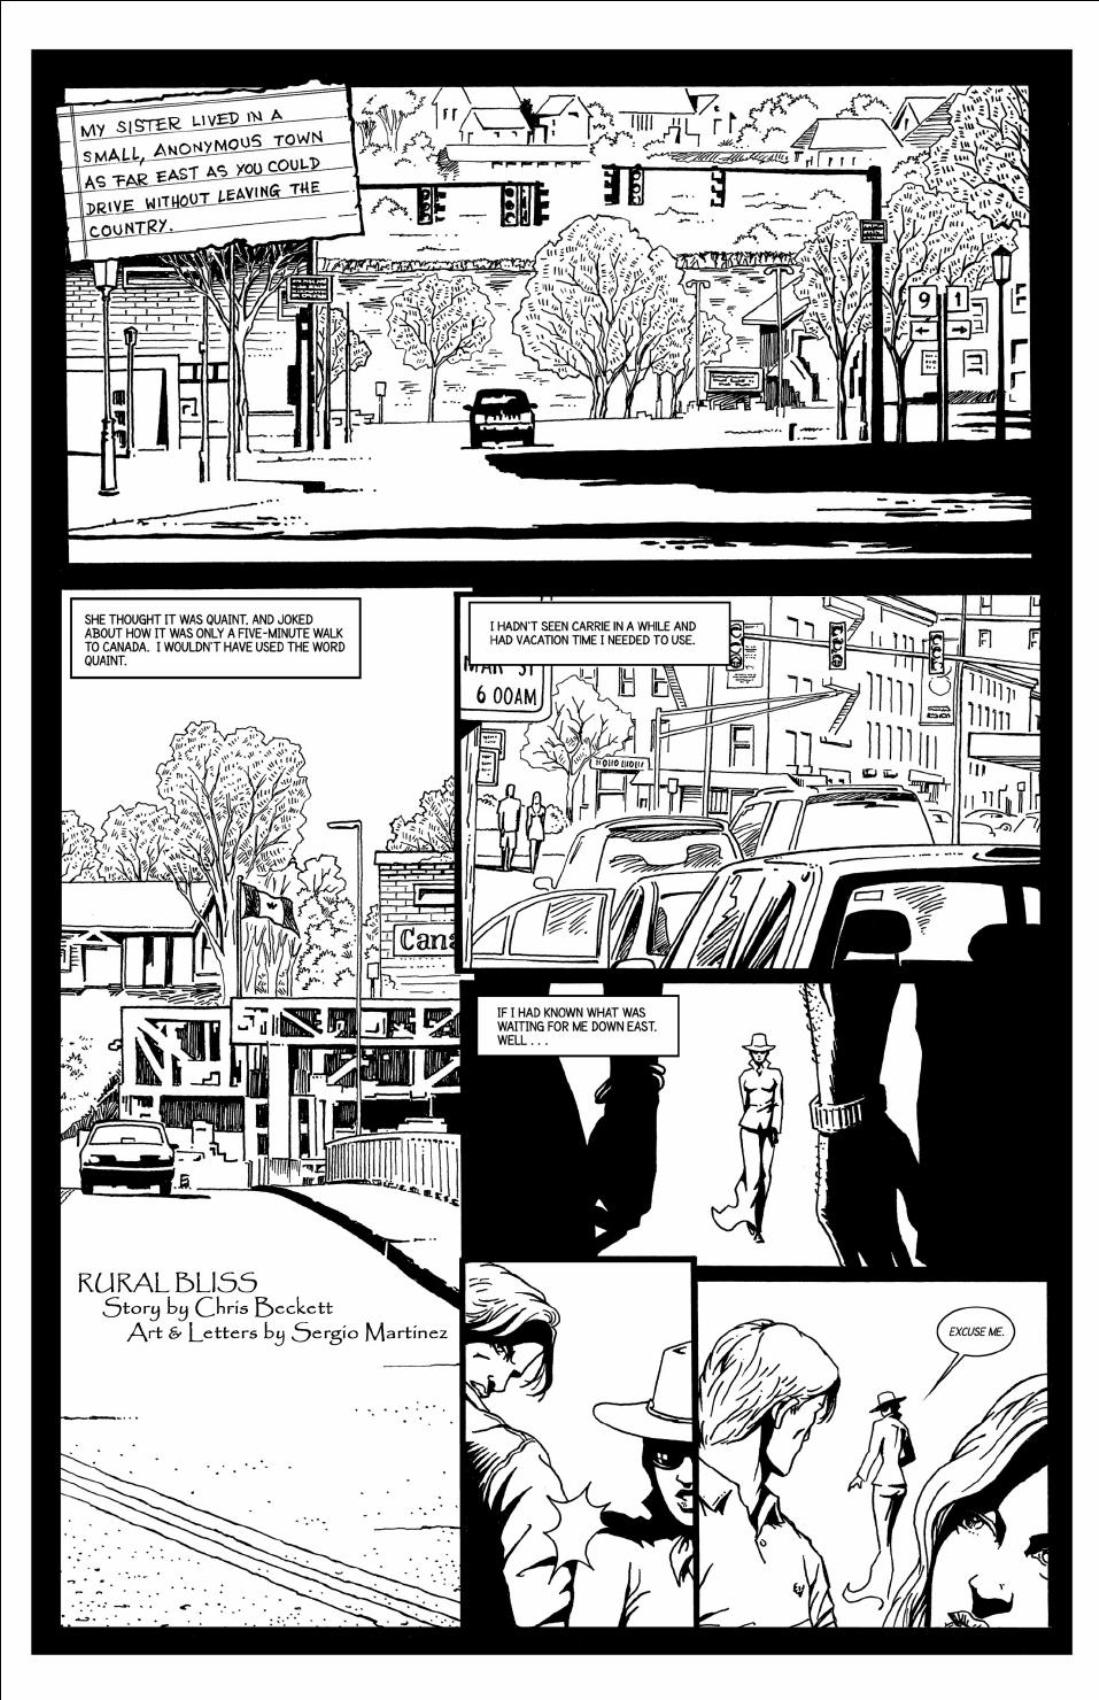 Rural Bliss - page 1